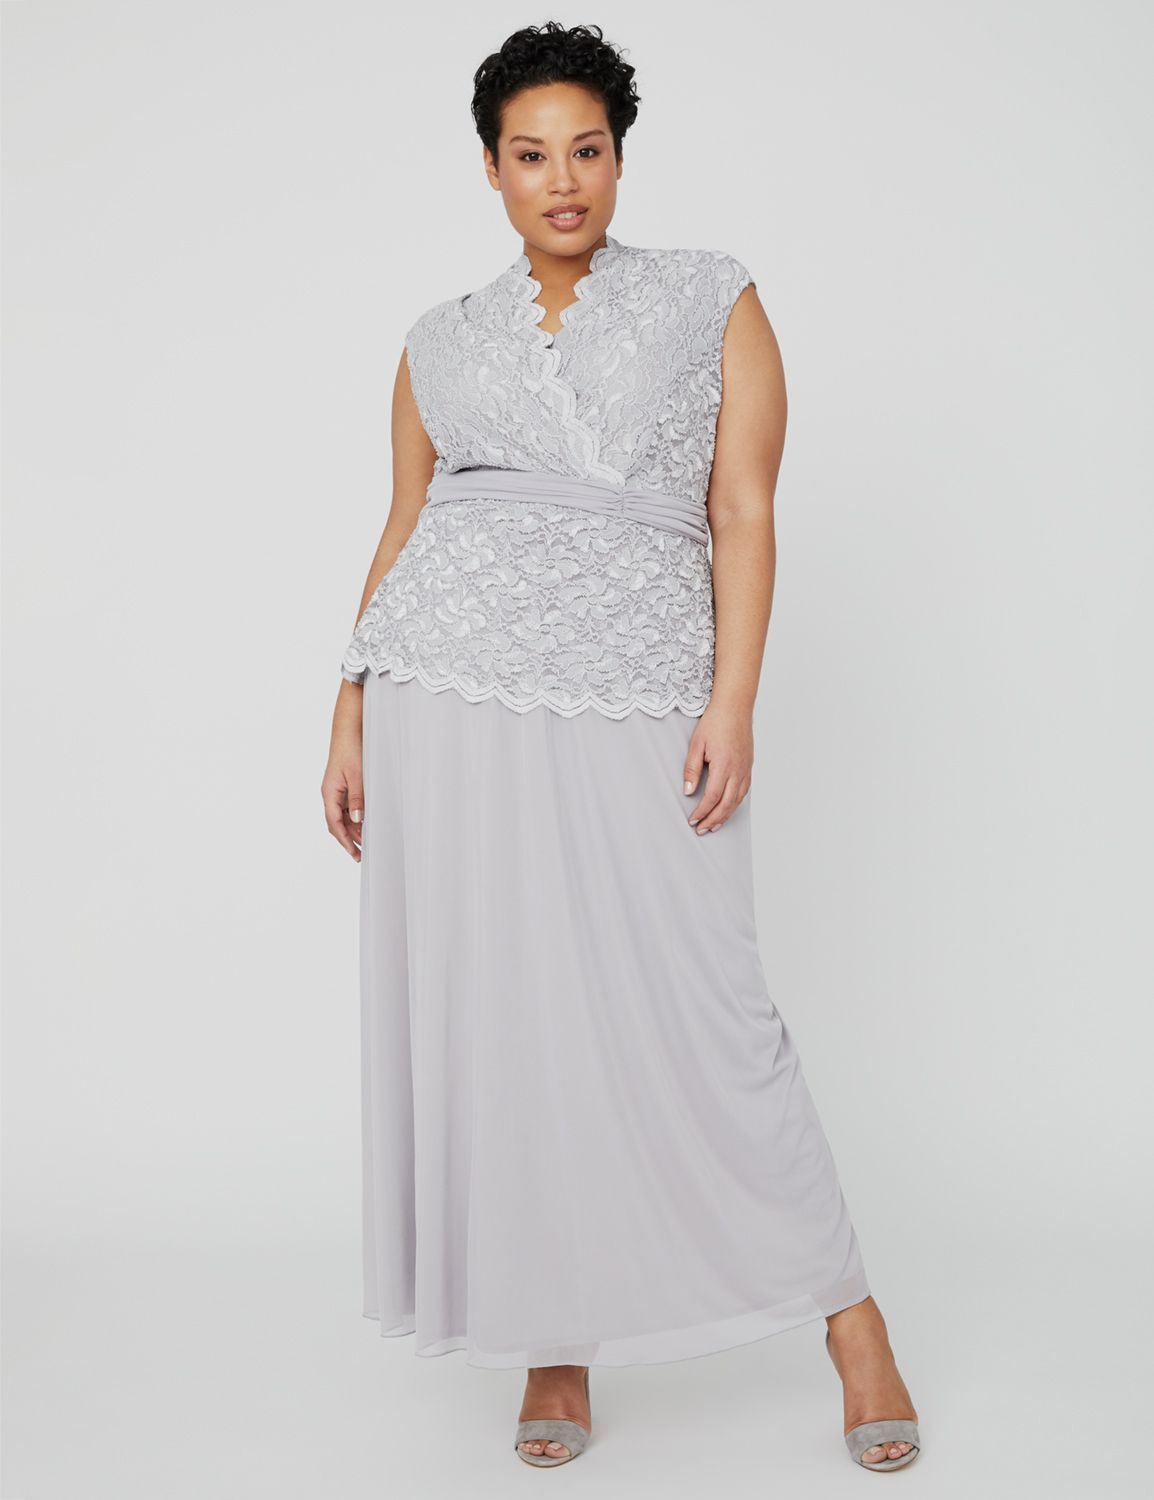 Plus Size Dresses Gowns Sizes 0x 5x Catherines